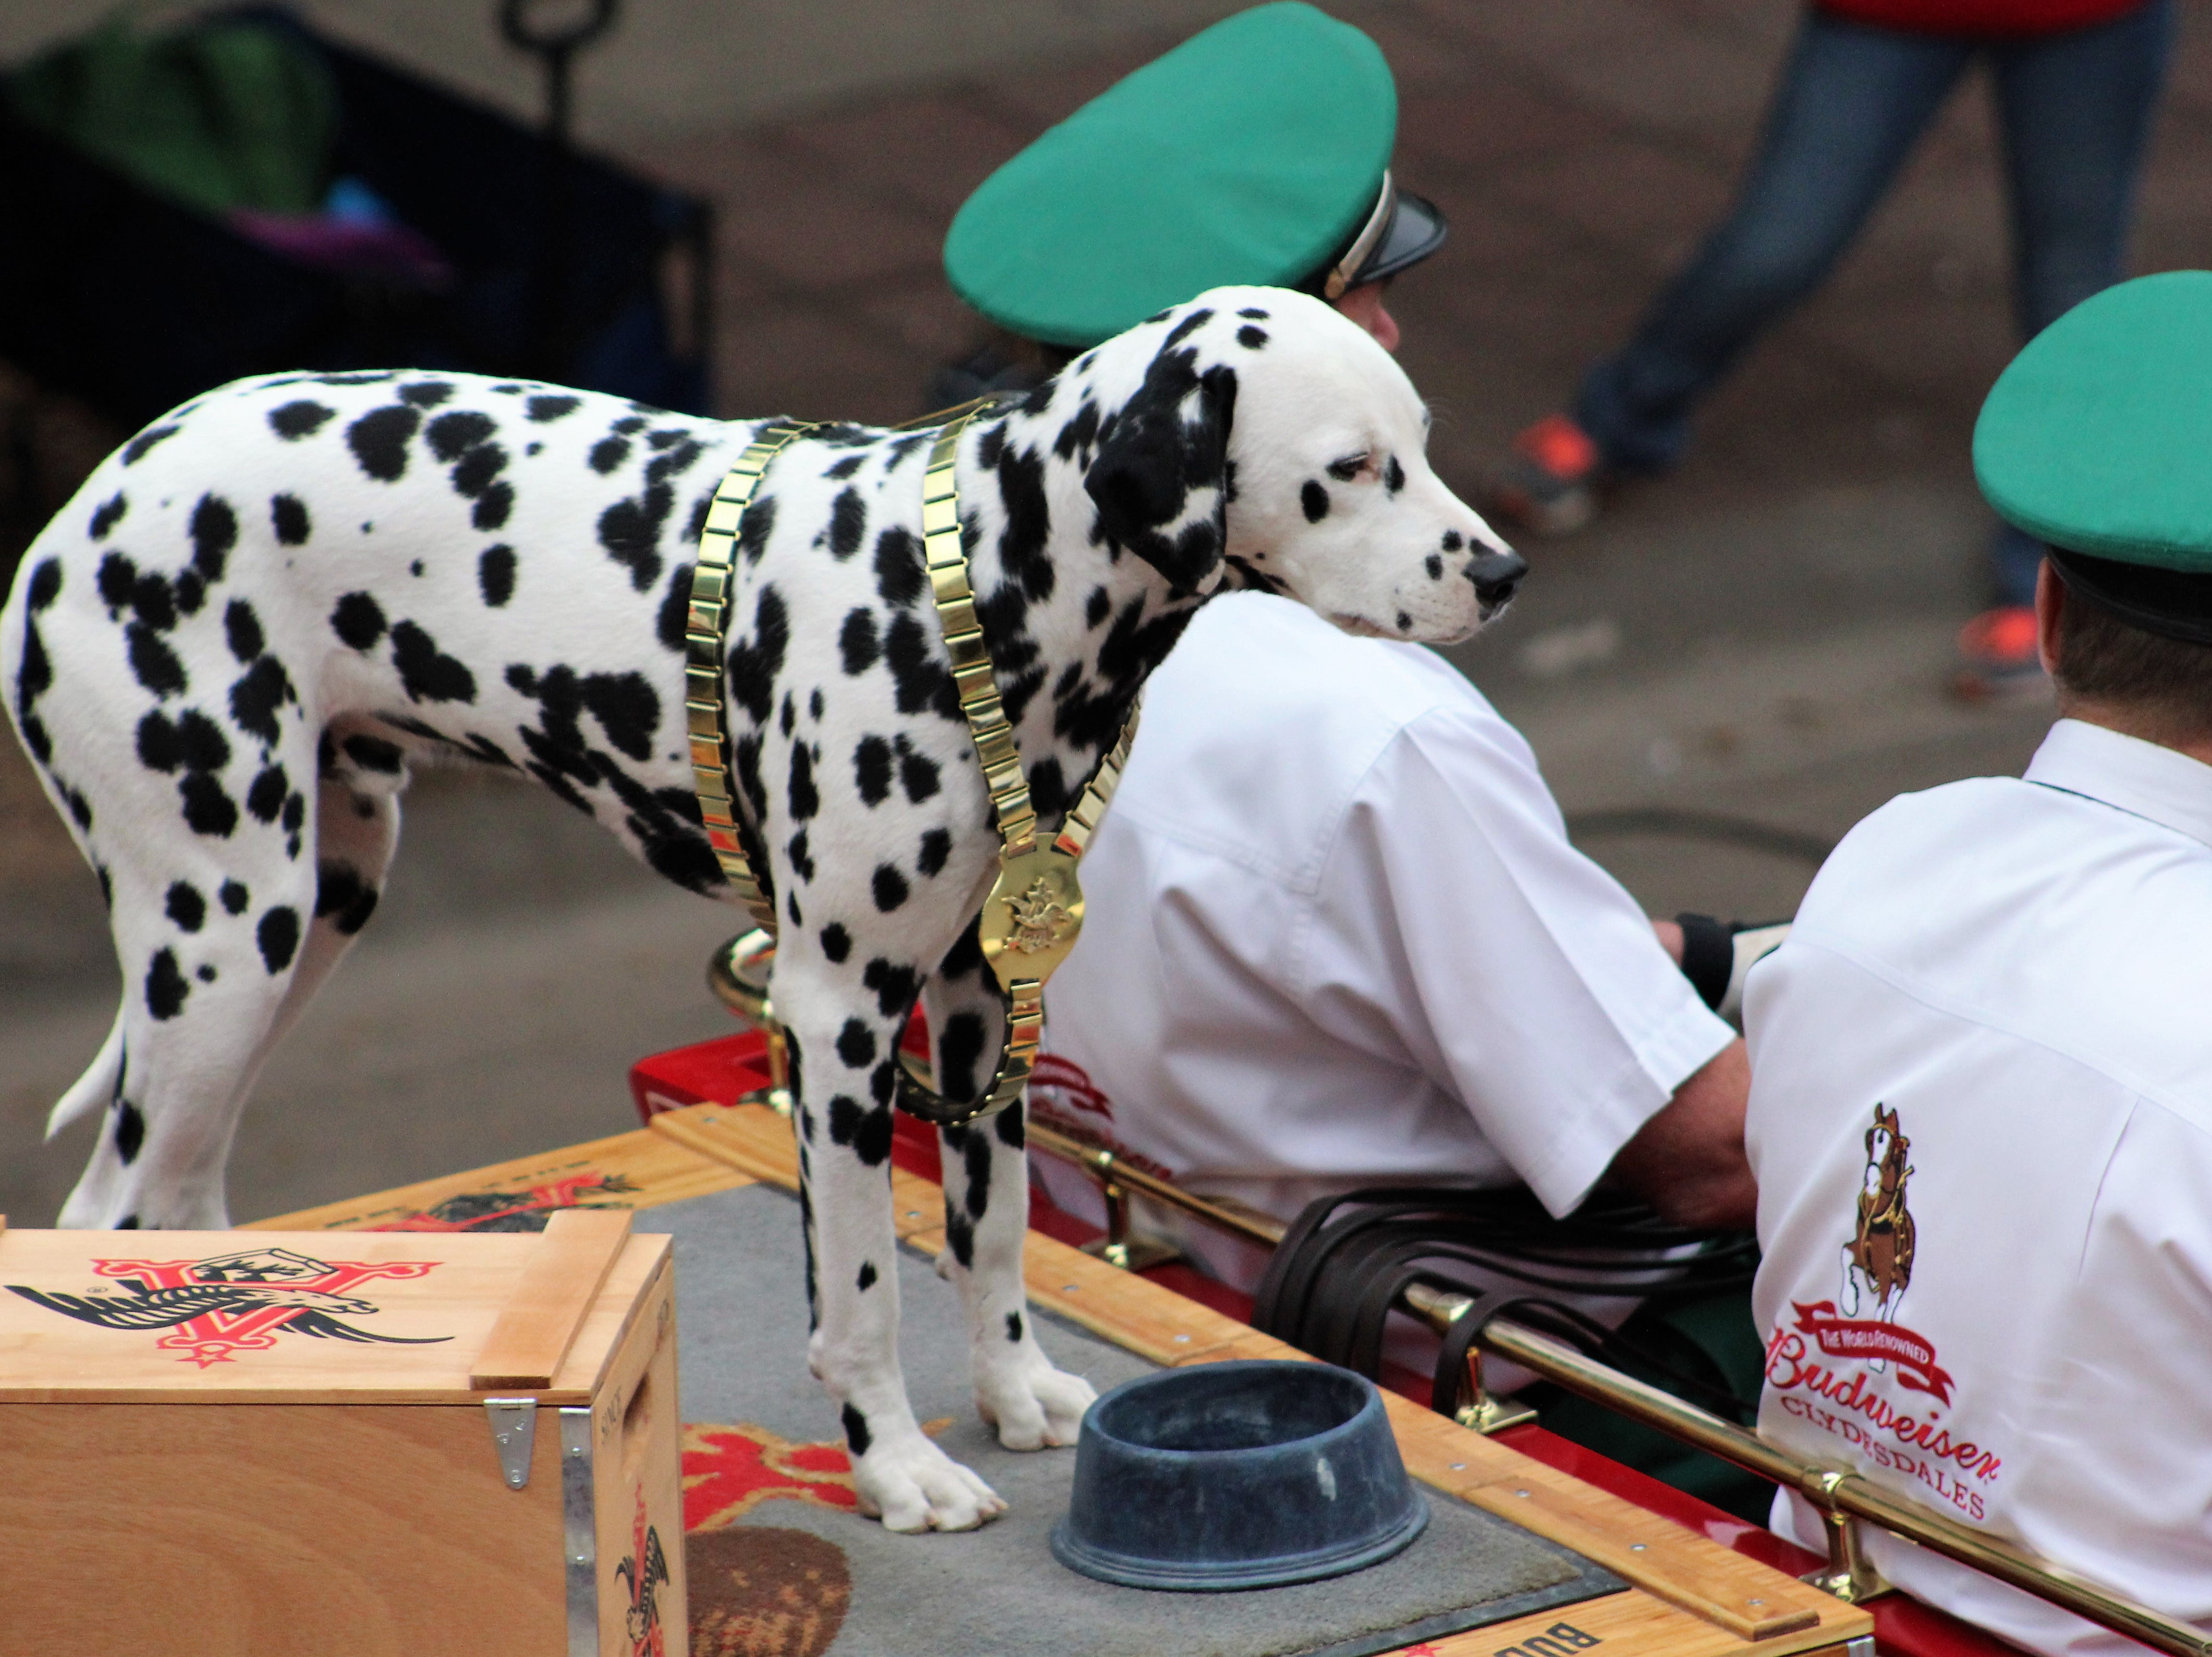 Noting that Abilene is a dog-friendly town, the Dalmatian riding atop the Budweiser wagon in Thursday evening's Western Heritage Classic parade downtown poses for those taking cellphone photos and video. May 9, 2019